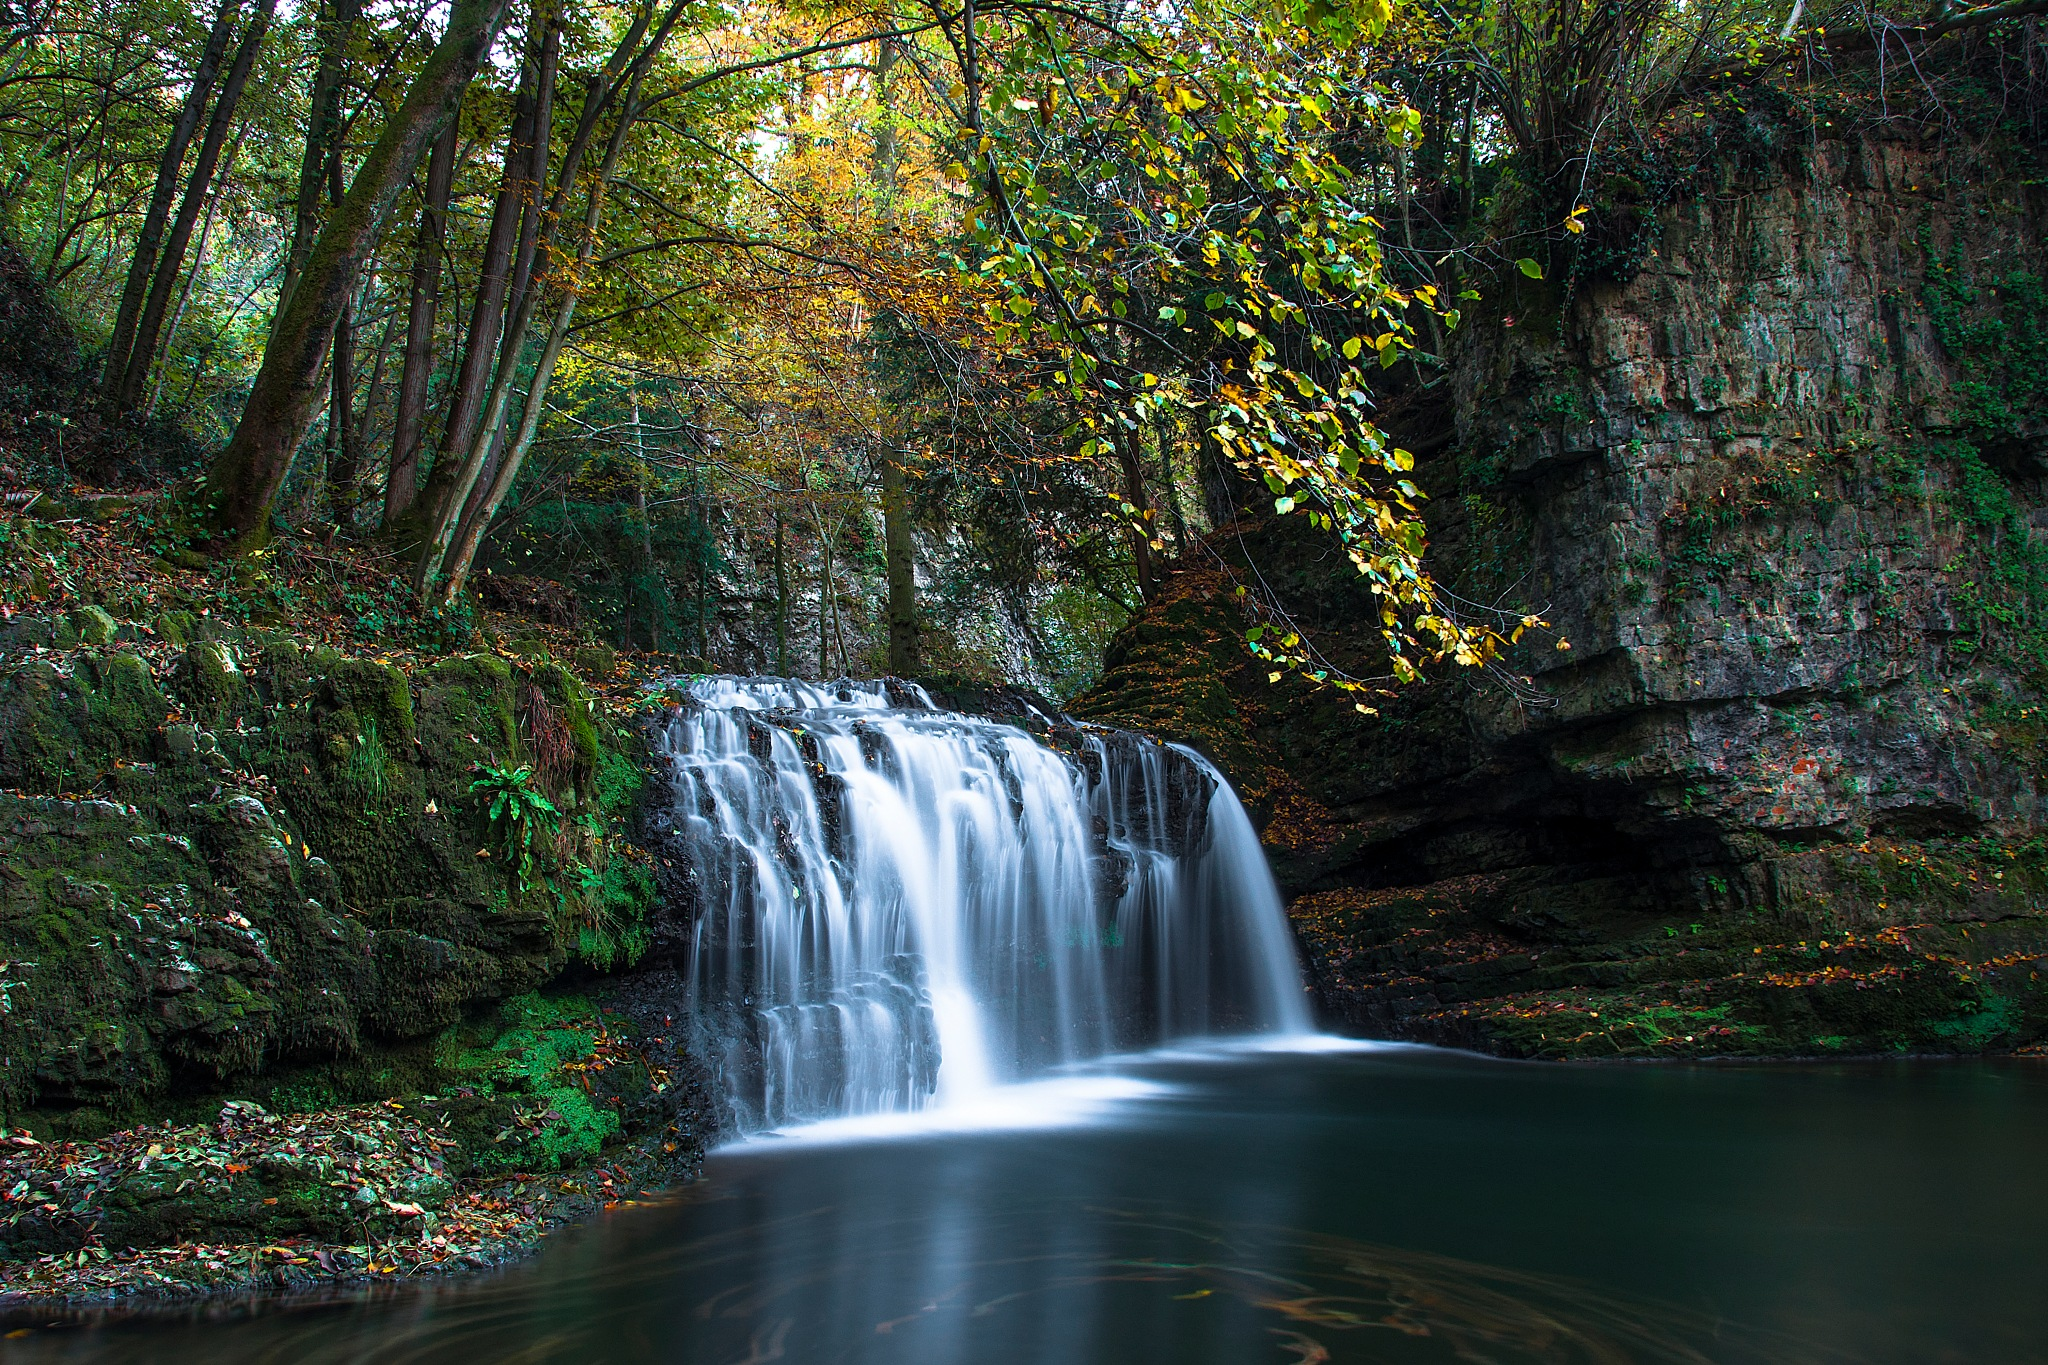 Cascata Fermona - Fermona waterfall  by Simone Cortese